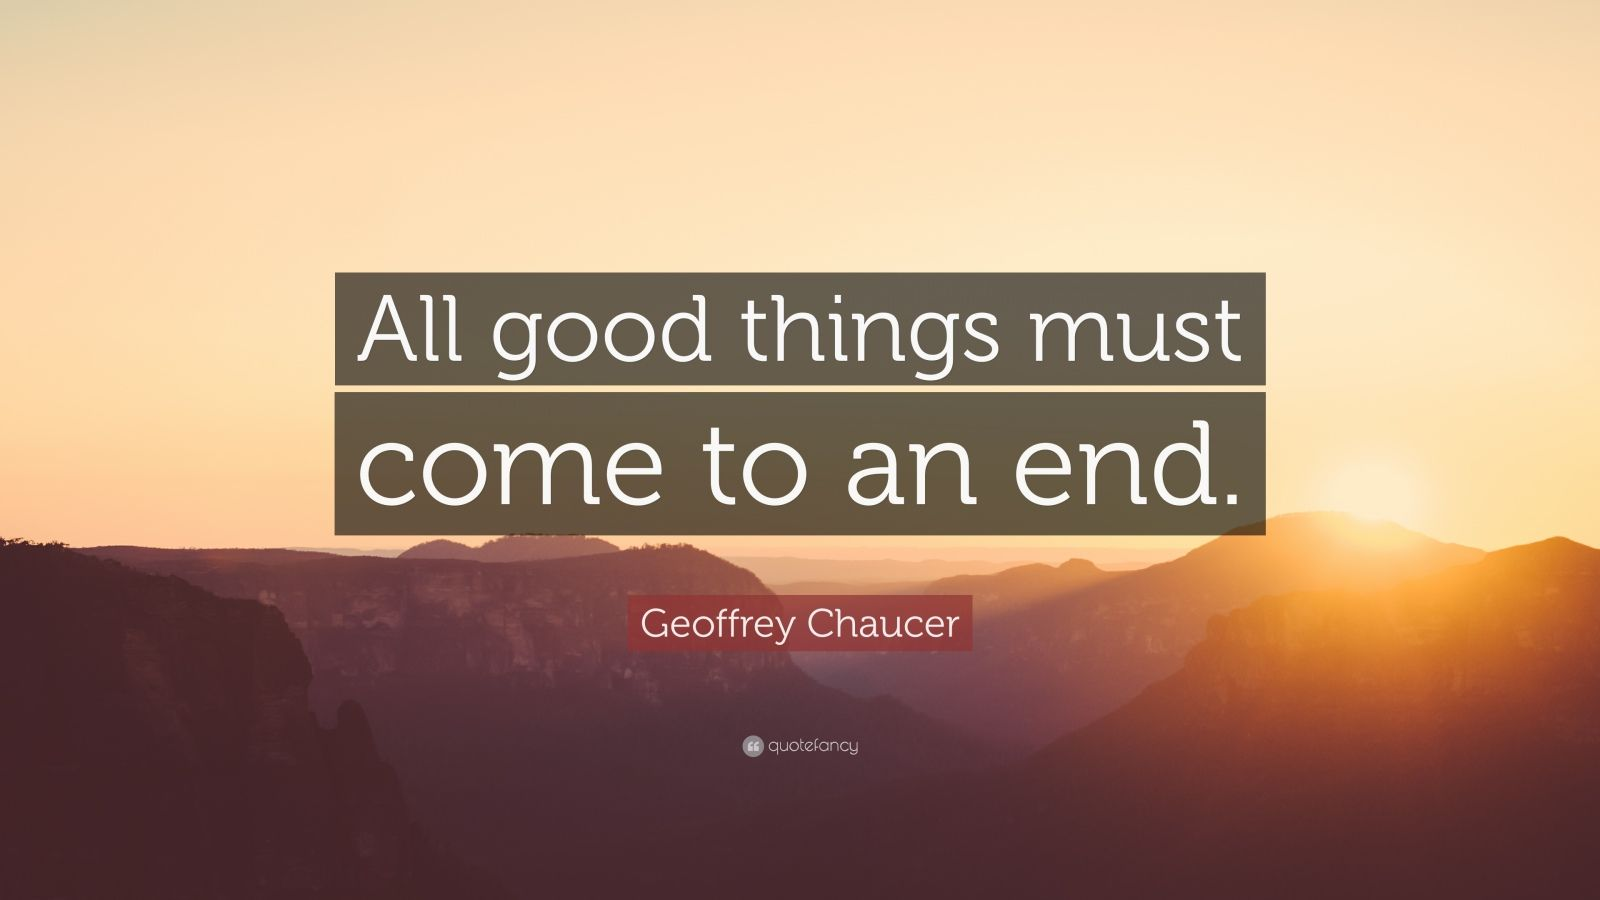 Geoffrey Chaucer Quotes 100 Wallpapers Quotefancy